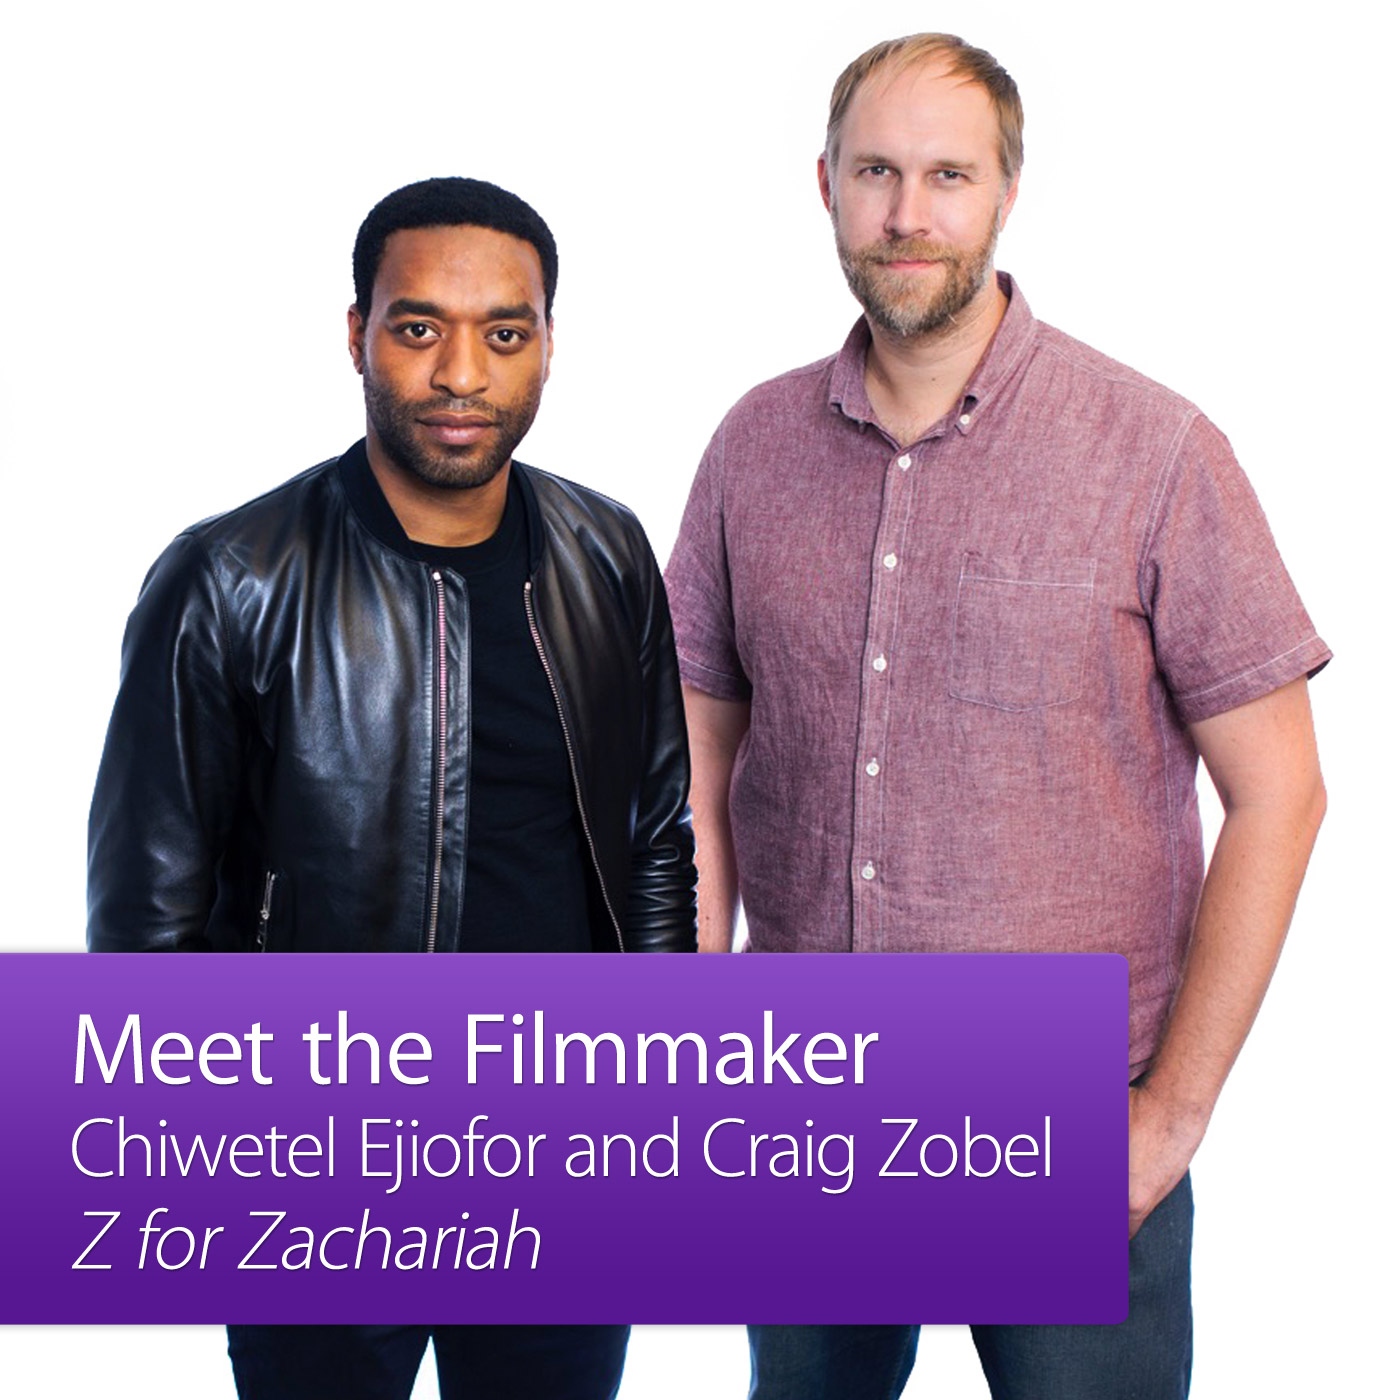 Z for Zachariah: Meet the Filmmaker